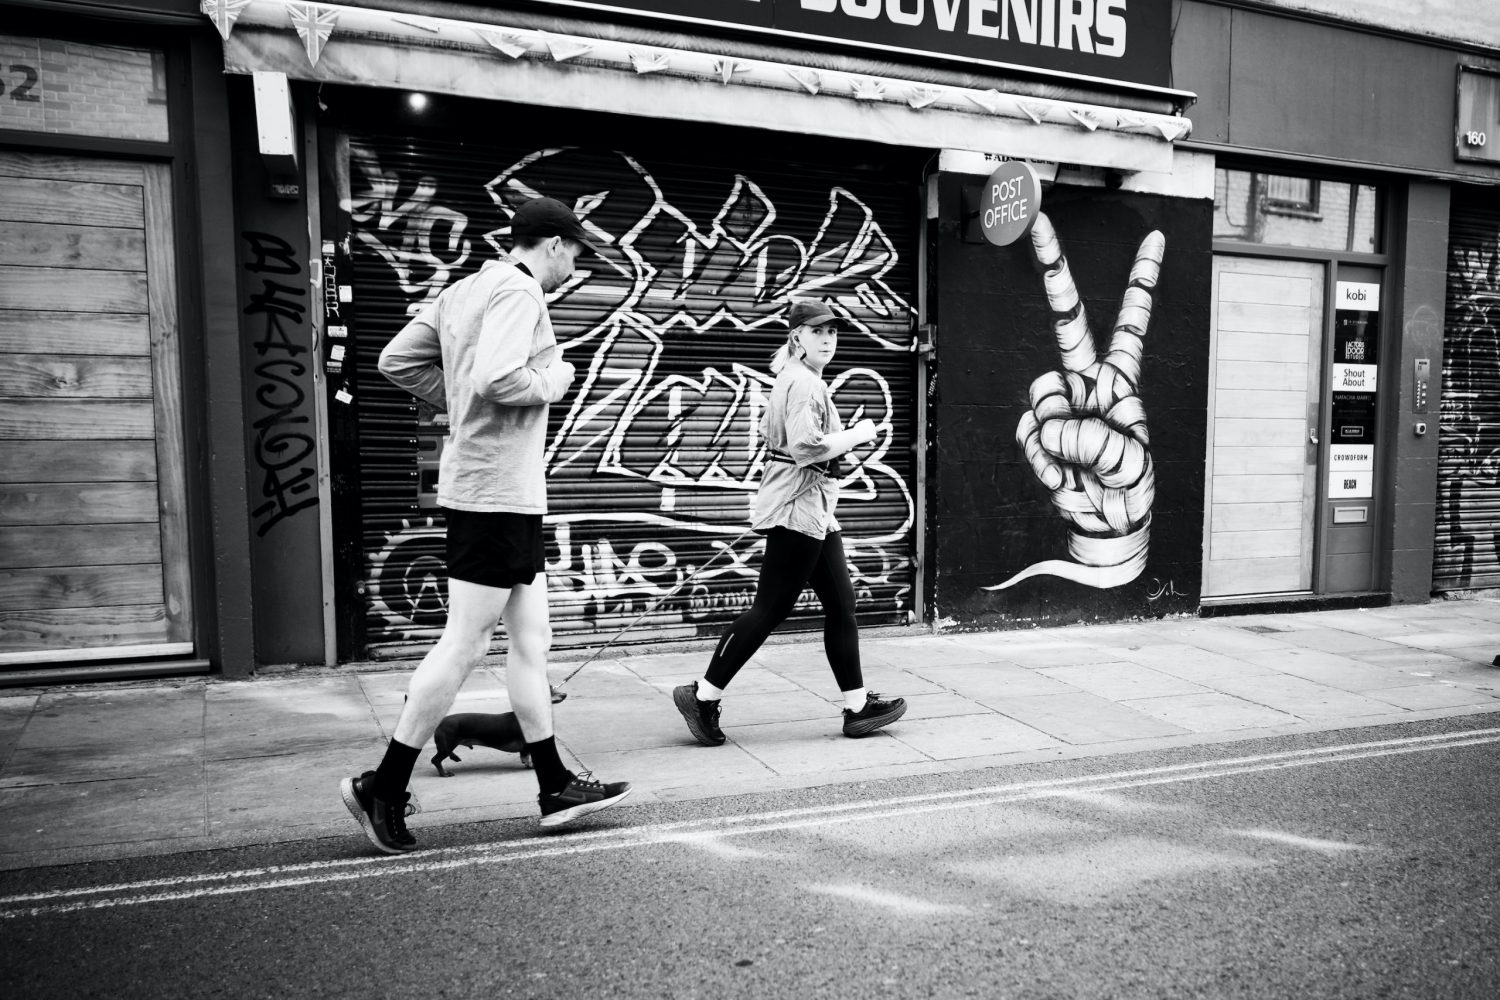 The only thing they can do is run. London, 8 May.